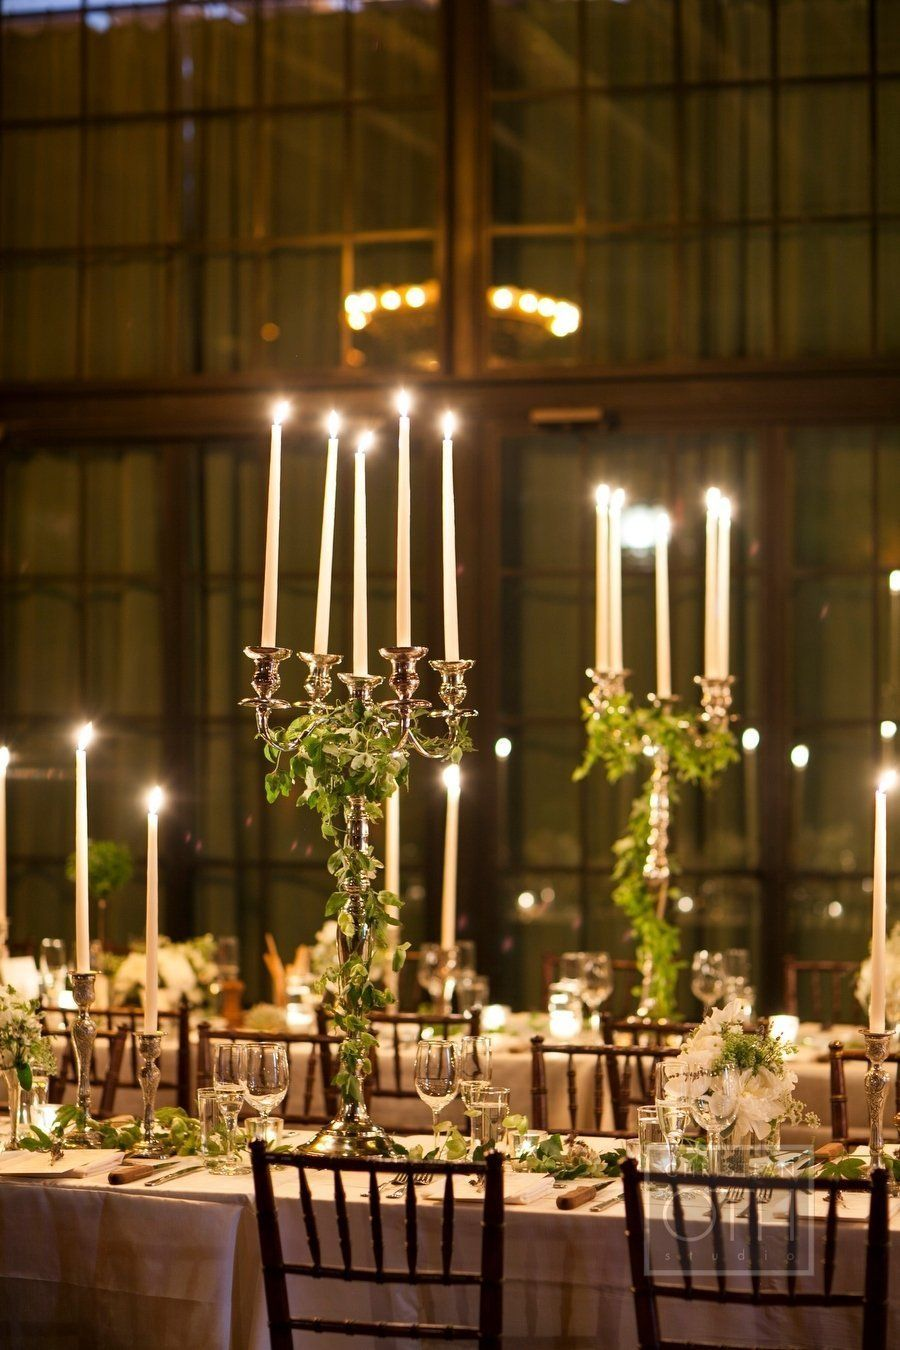 Christian wedding decoration designs  Bowery Hotel Wedding by Christian Oth Studio  Lyndsey Hamilton